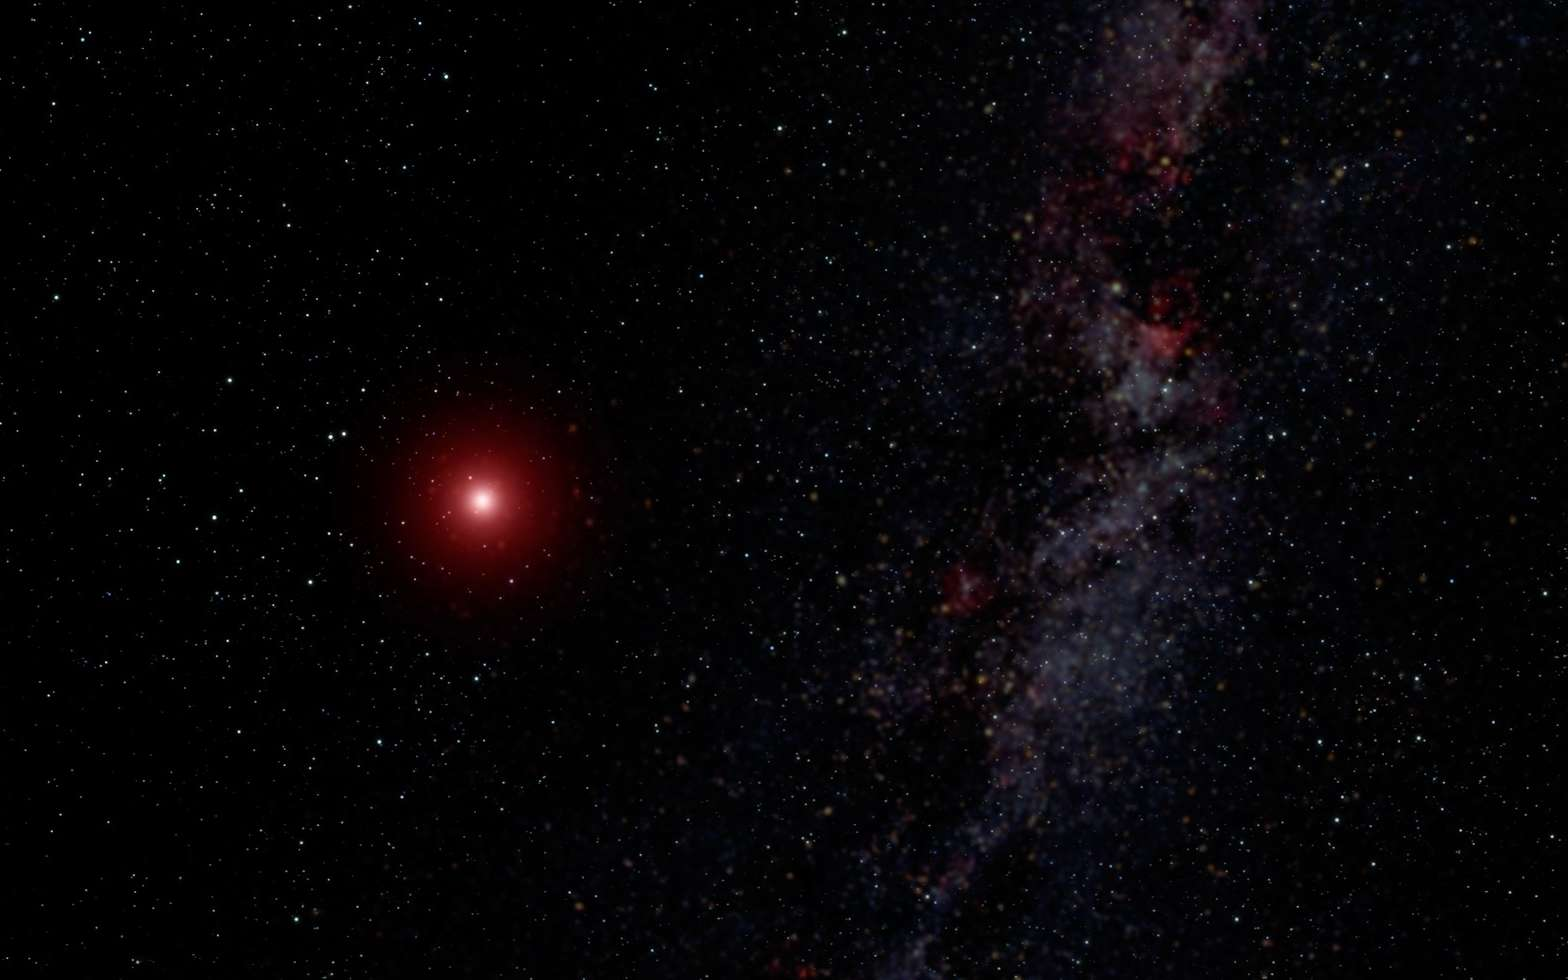 Illustration d'une naine rouge ultrafroide. © Nasa, ESA, G. Bacon (STScI)